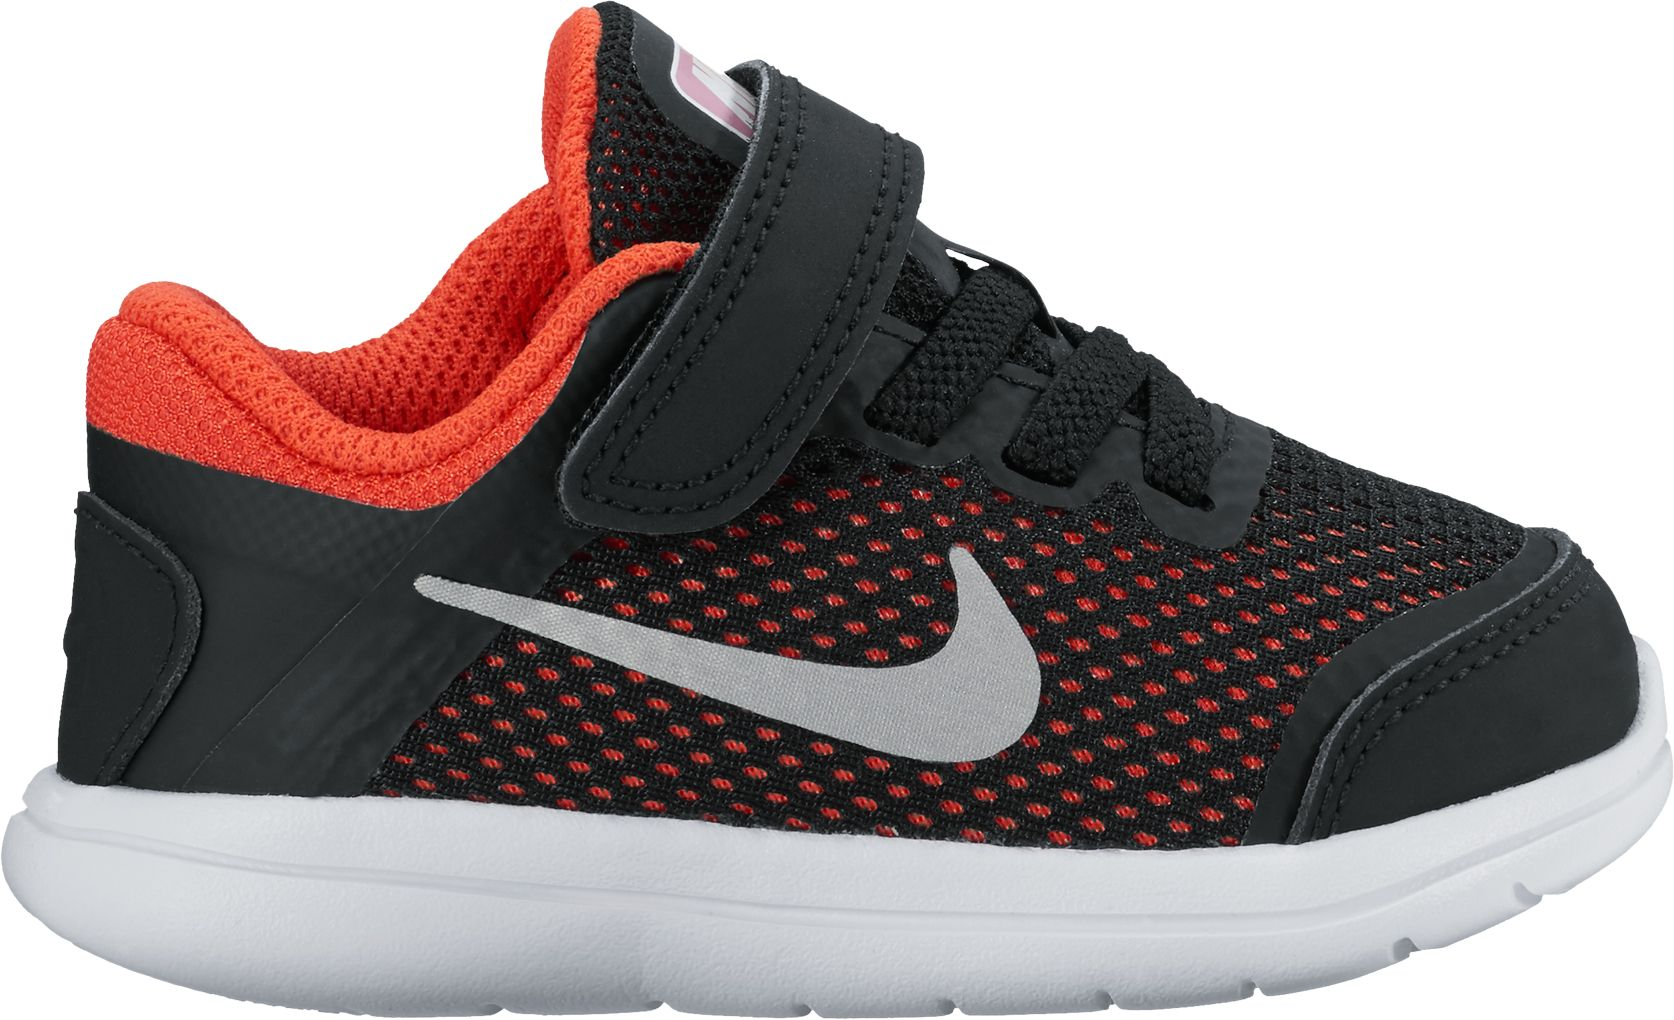 Nike Flex Run Shoes - 2014, 2015, 2016 & 2017 | Best Price Guarantee at  DICK'S